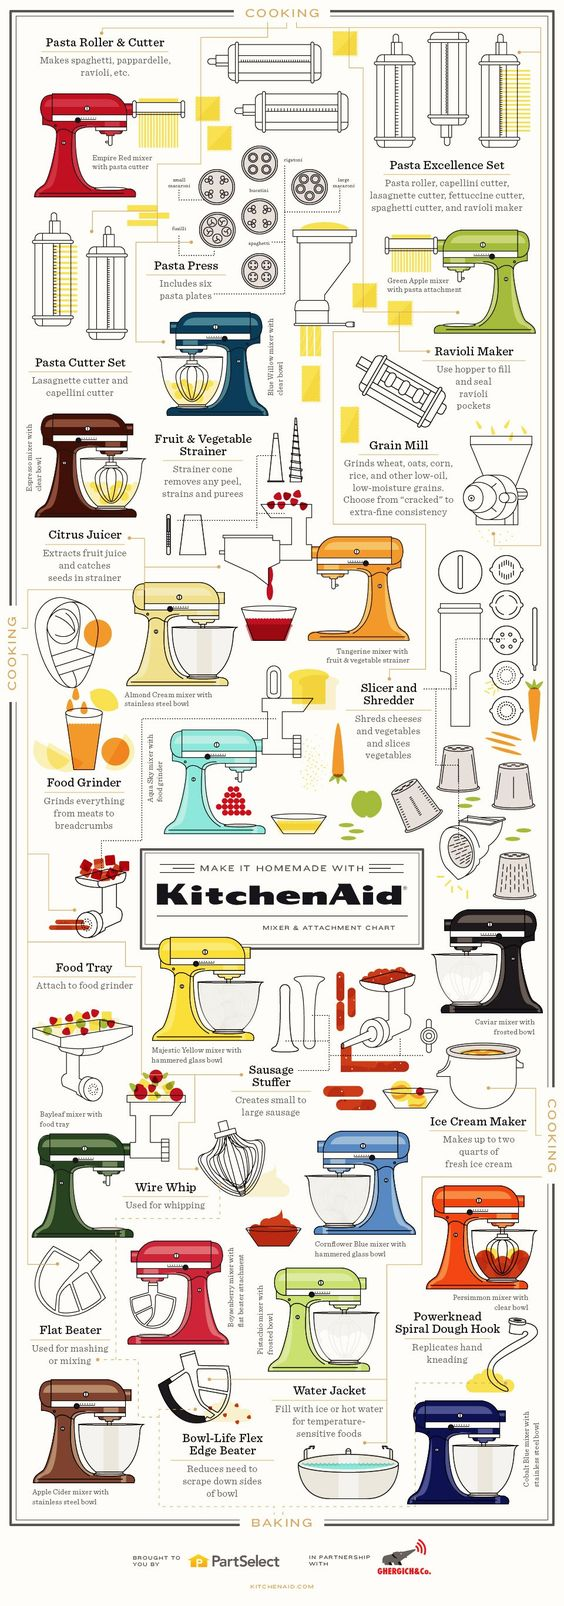 This infographic explains every KitchenAid Mixer attachment and what they do. It is one of the best I have seen. Such an awesome versatile kitchen product!